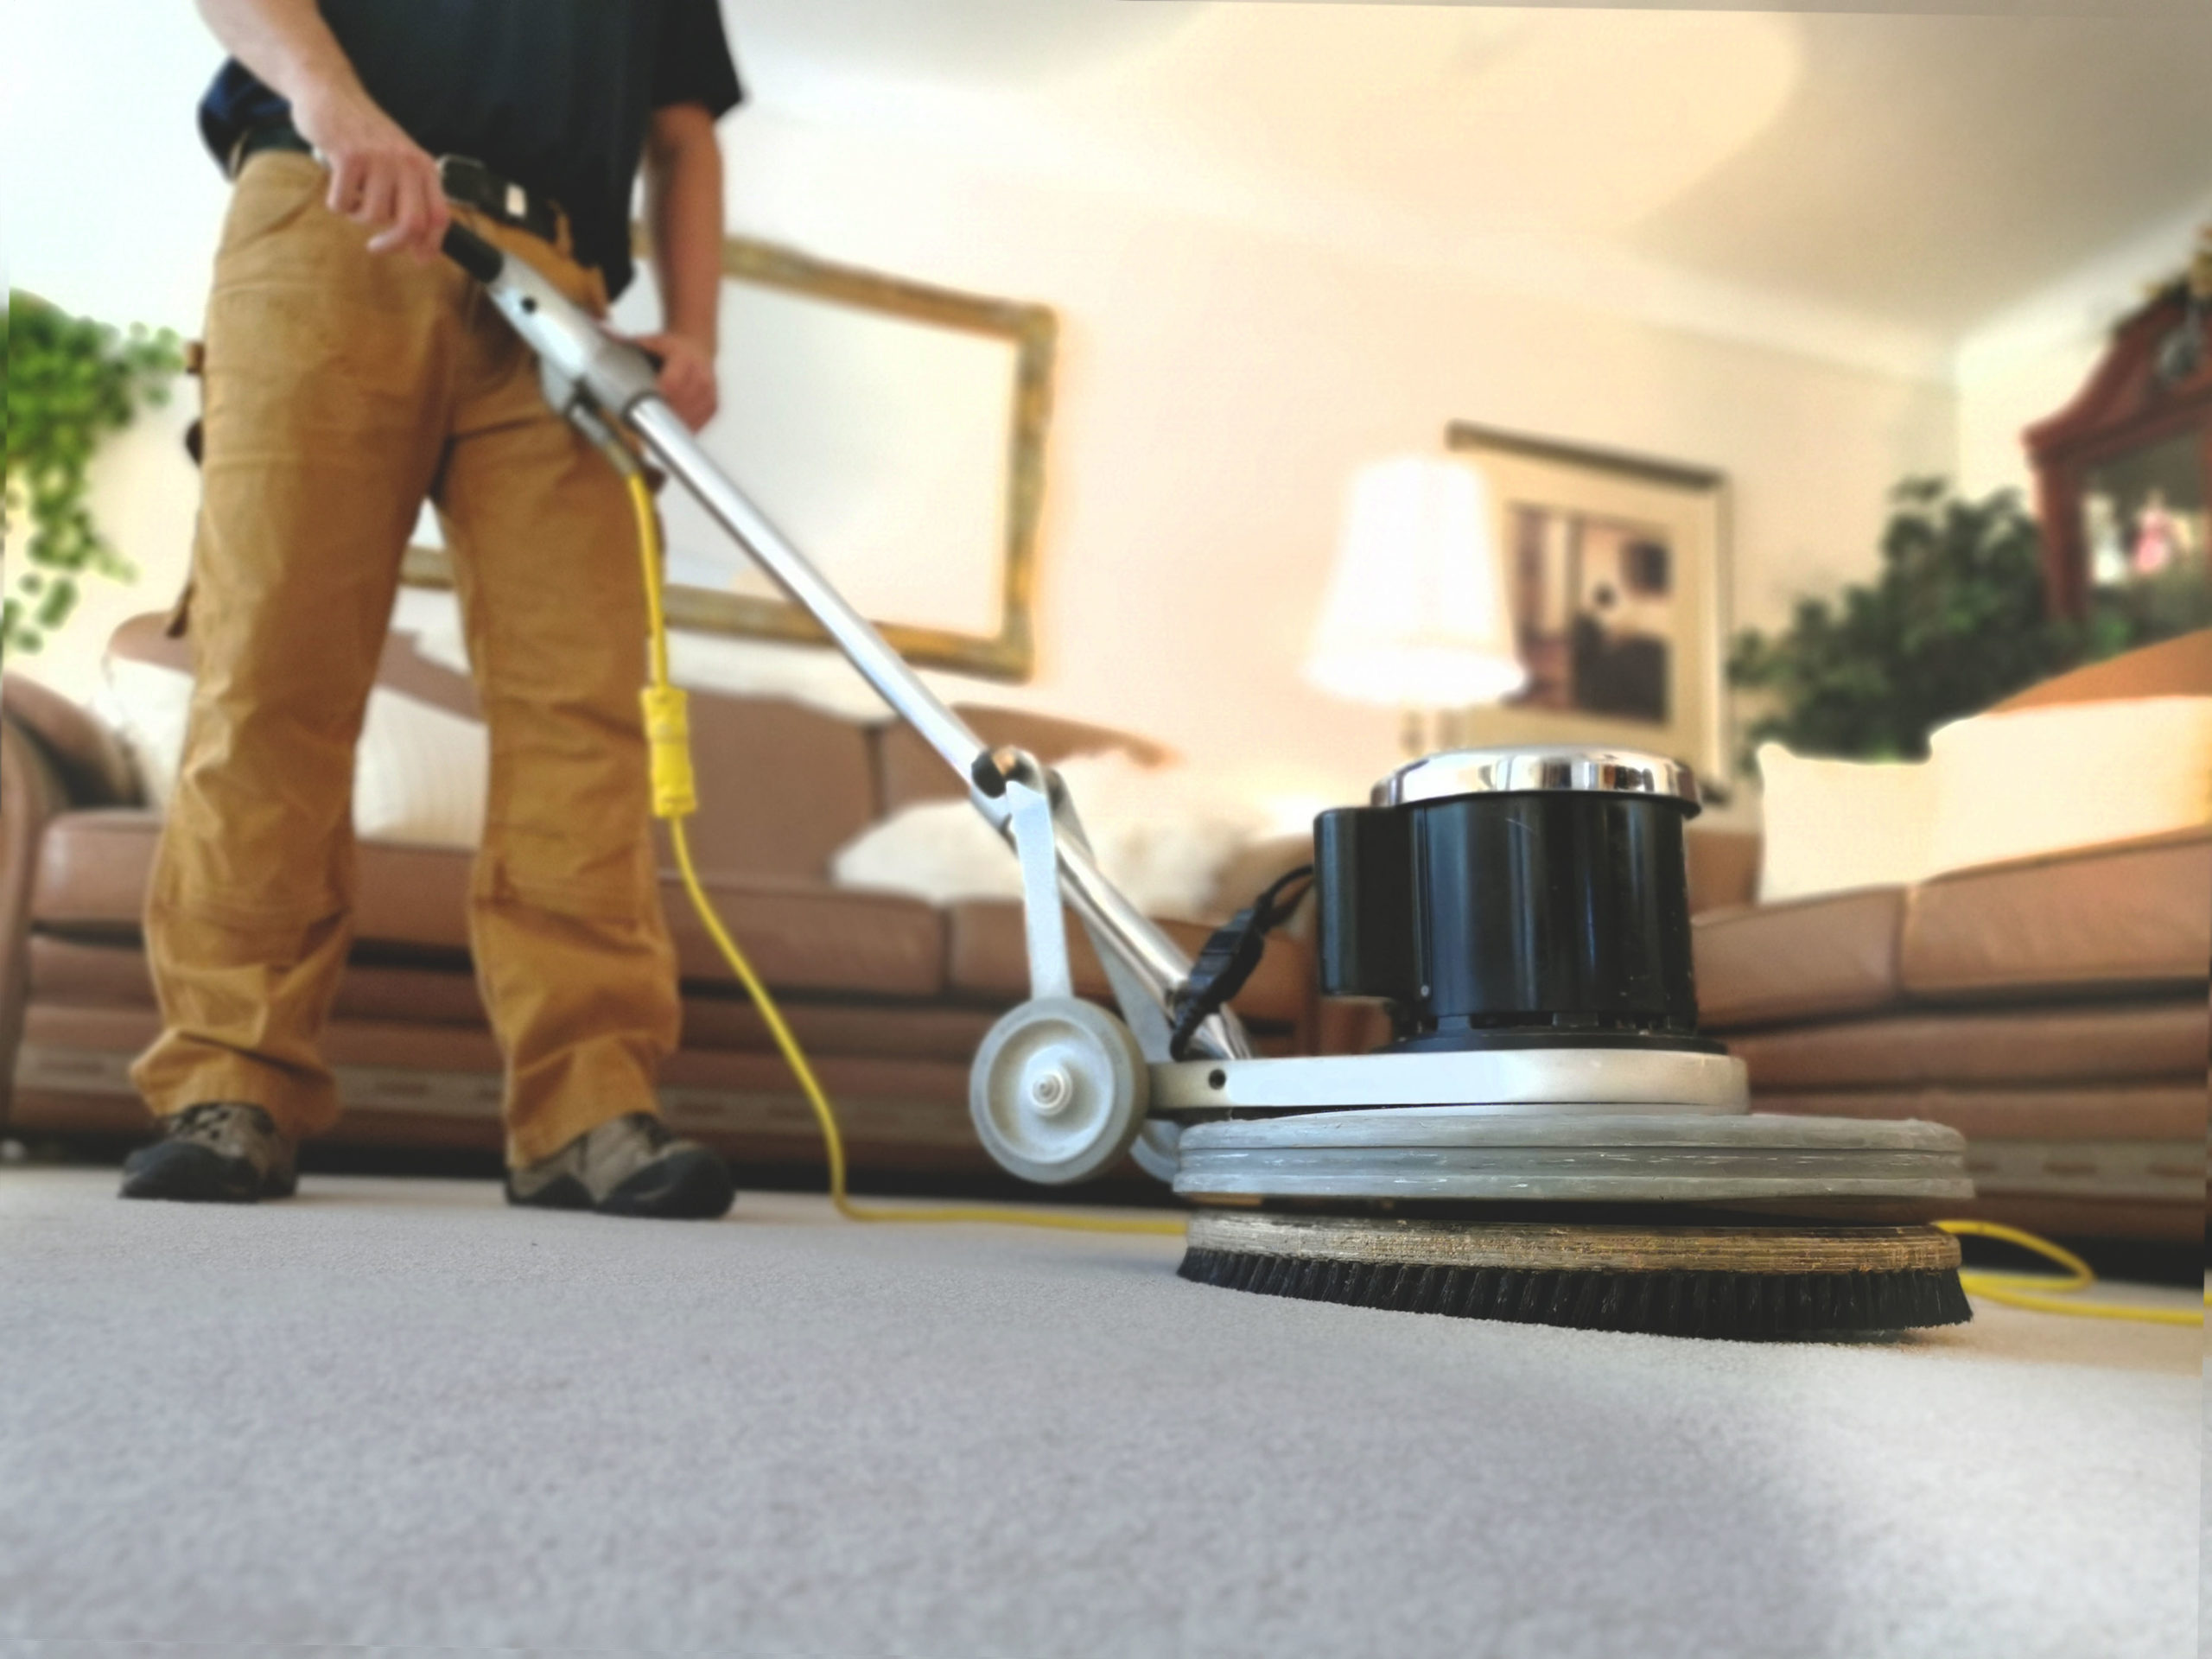 Close up of Chris O'Brien using a Rotostatic carpet cleaning scrubber in a living room